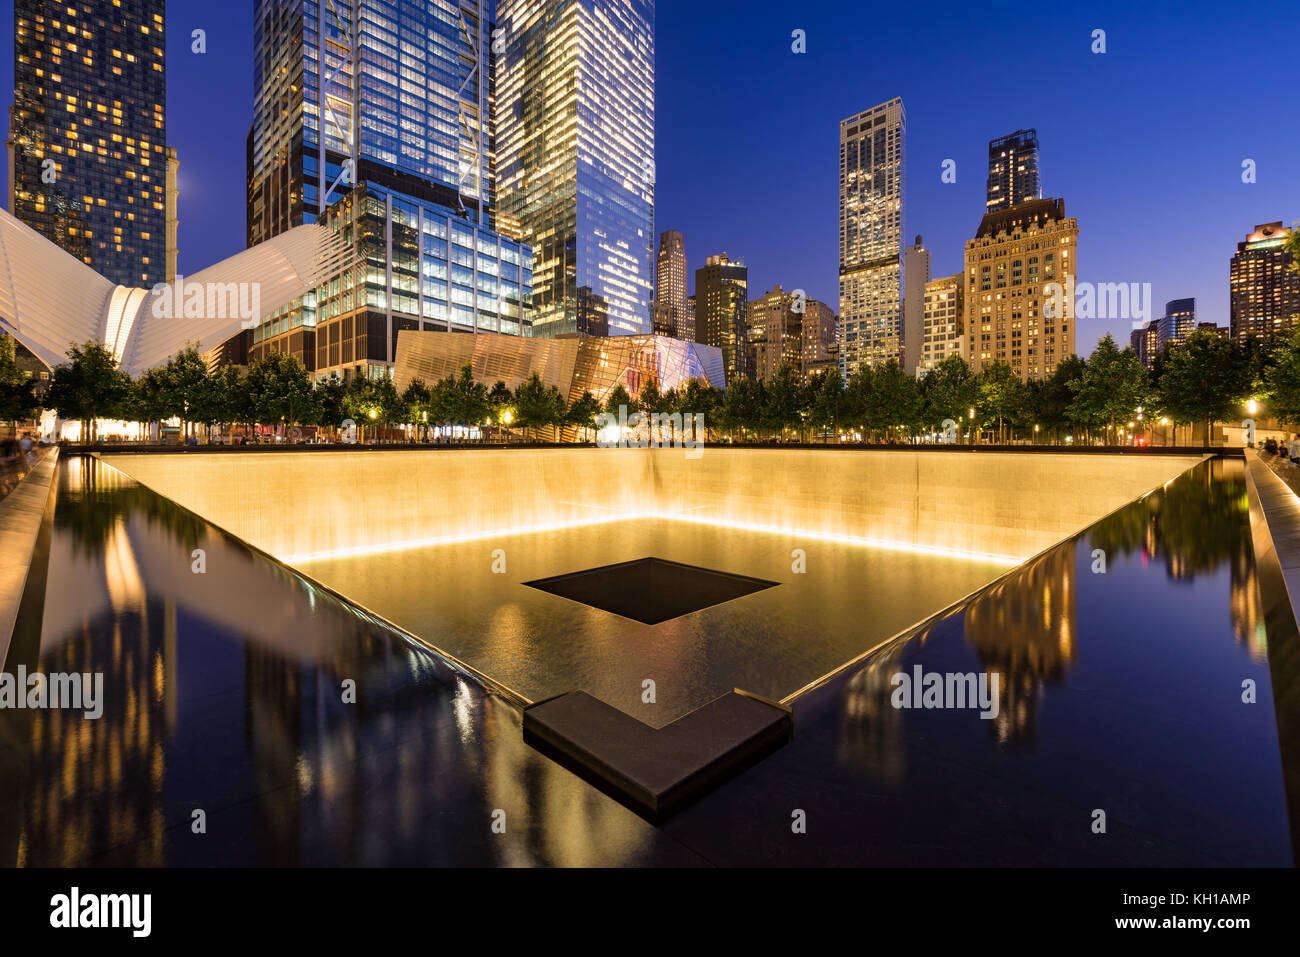 The North Reflecting Pool illuminated at twilight with view of the World Trade Center Tower 3 and 4 and the Oculus. - Stock Image